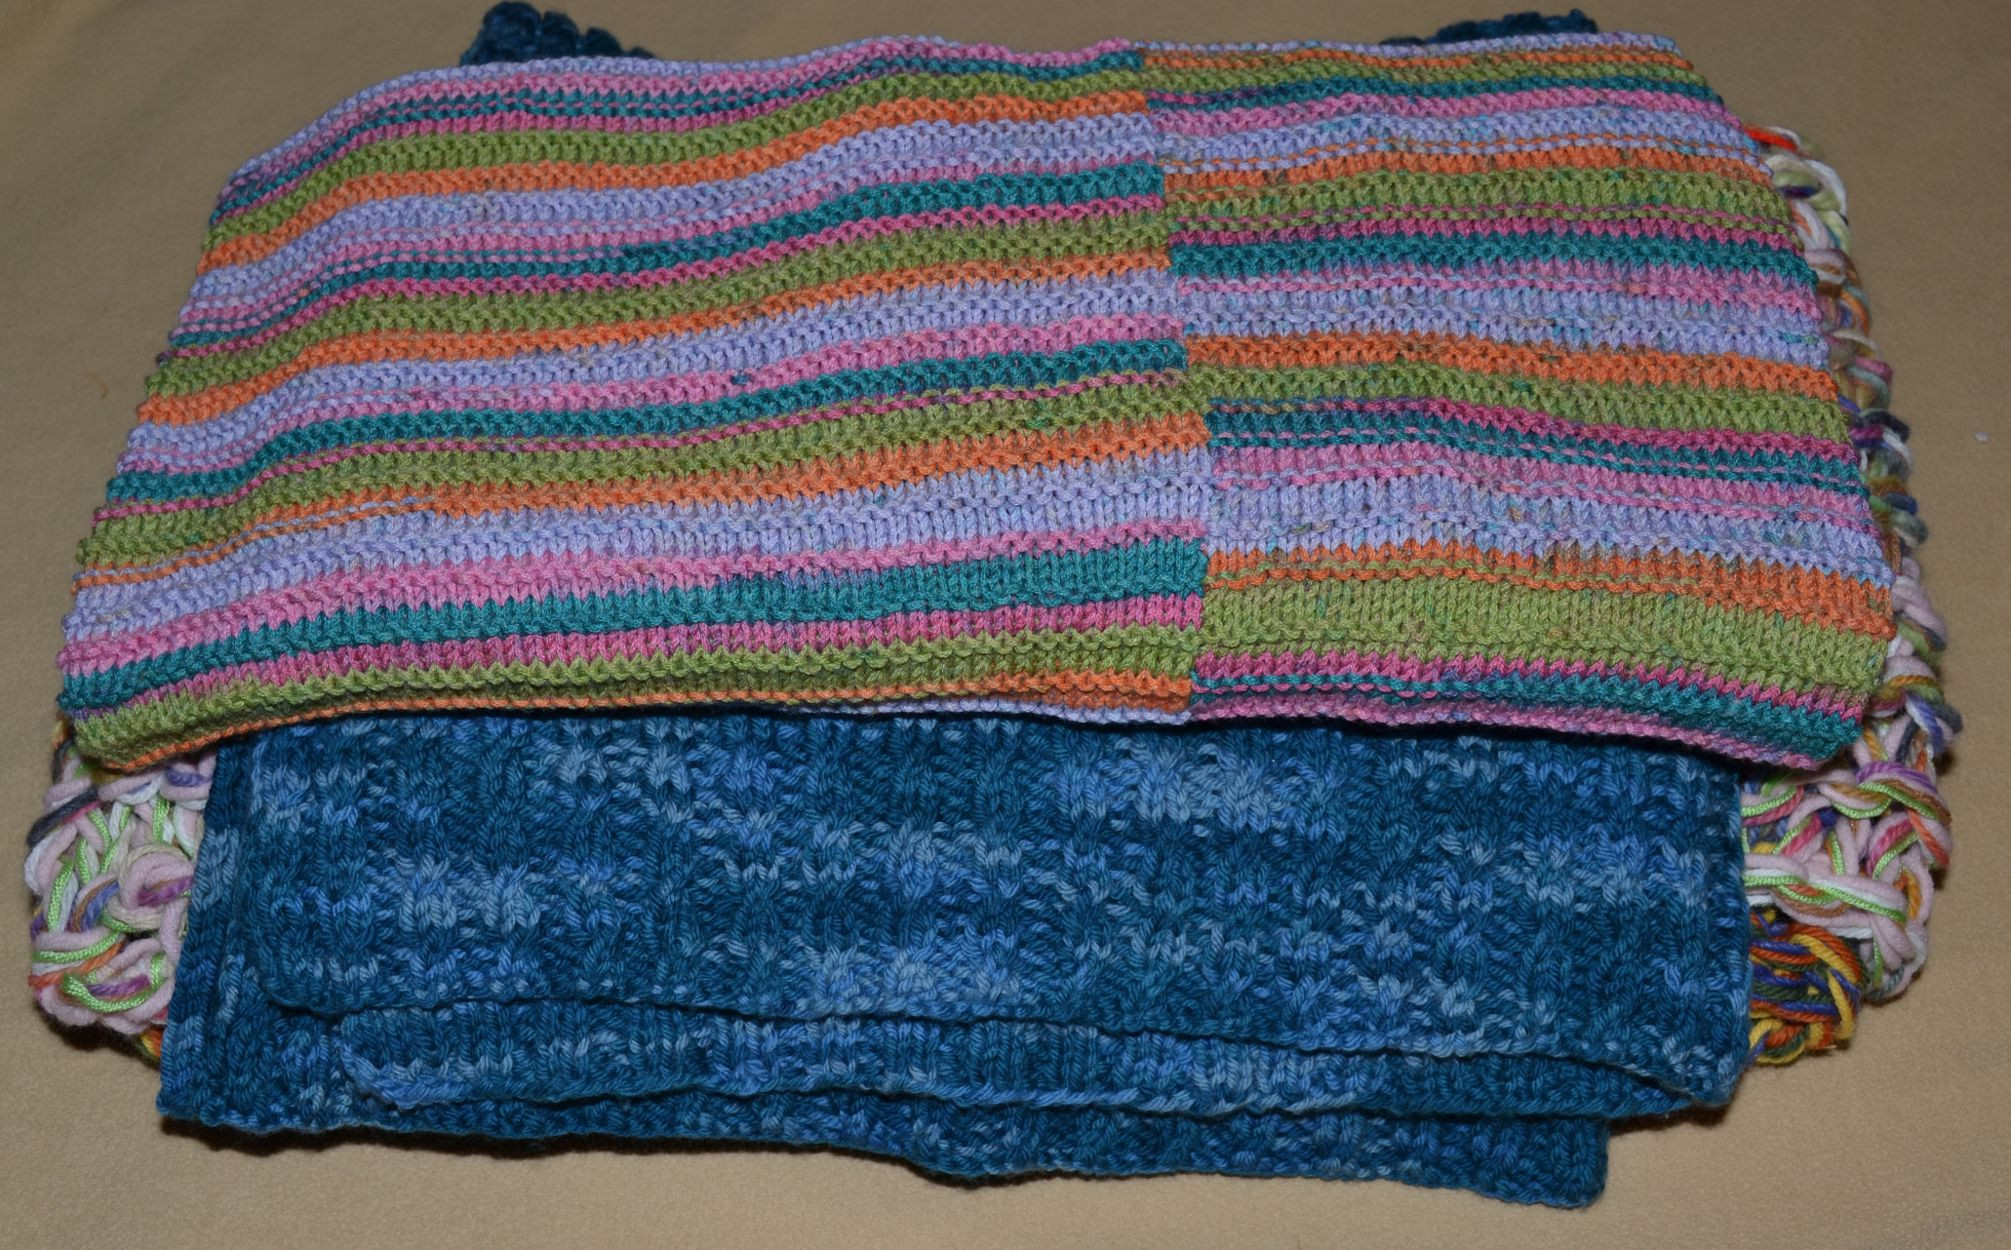 Unique How Much Yarn for Baby Blanket Best Yarn for Baby Blanket Of Brilliant 49 Images Best Yarn for Baby Blanket